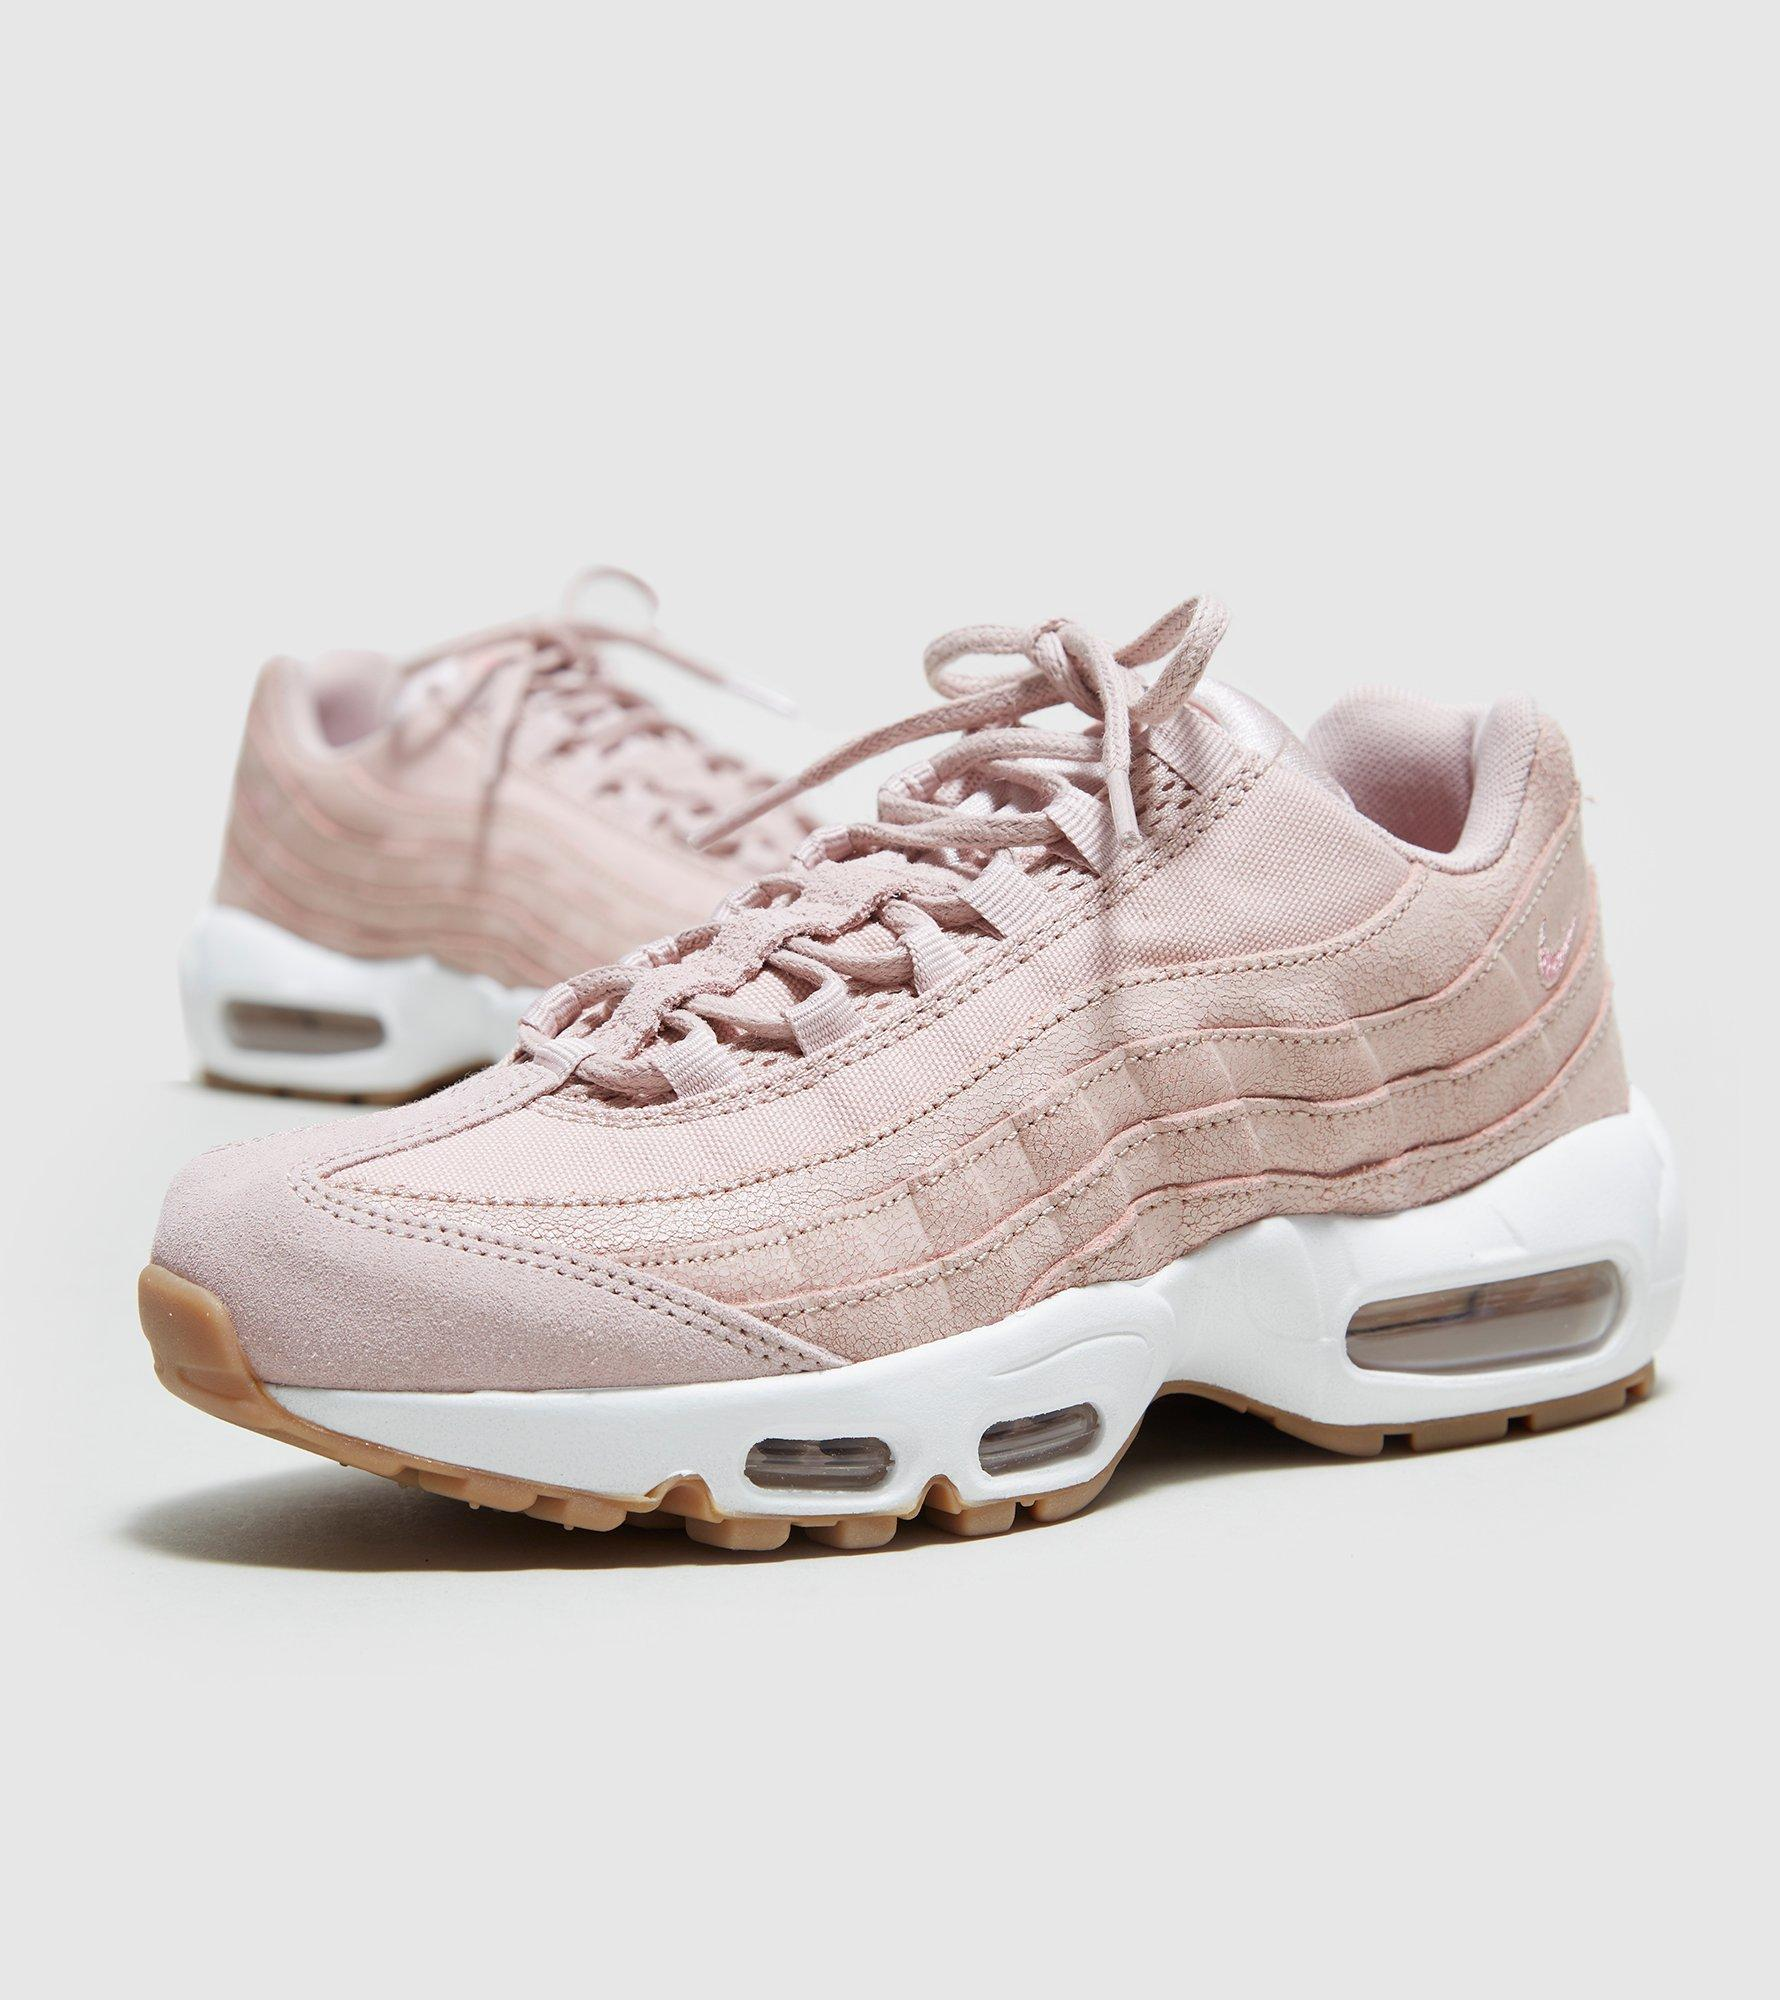 factory authentic 2cb7a f4031 where to buy nike air max 95 rosa oxford prm 69fdb 1669c